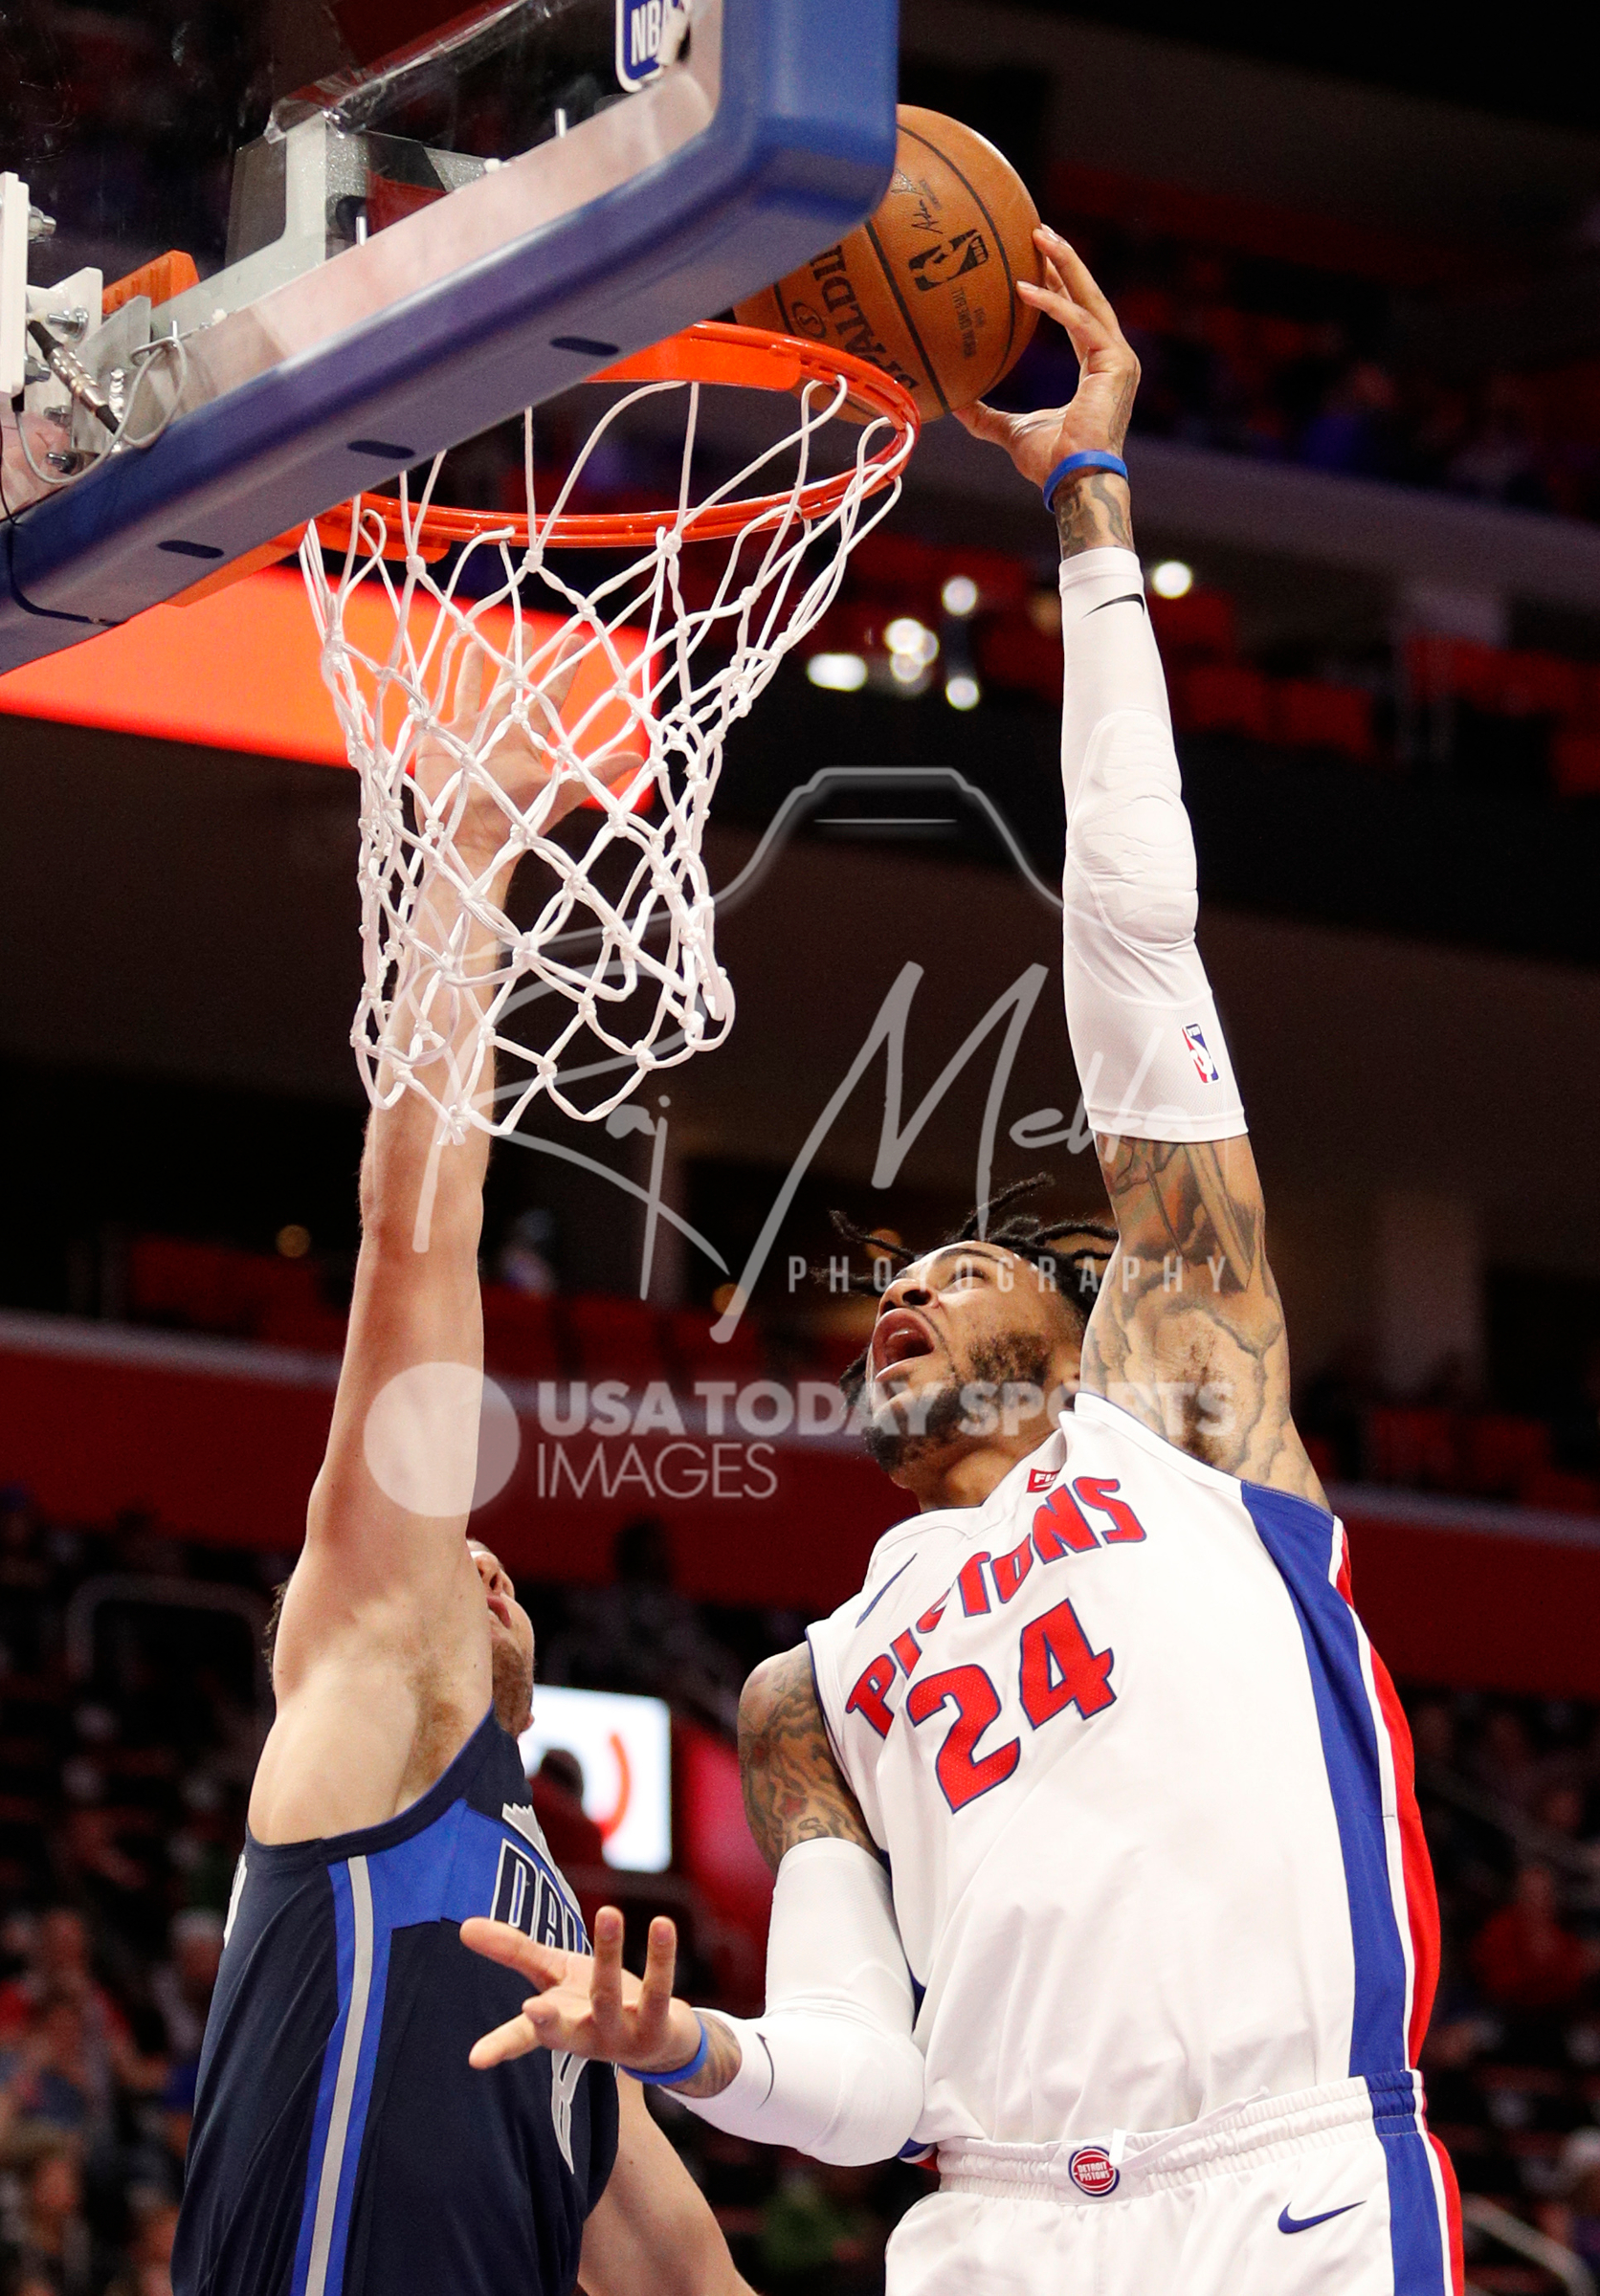 Apr 6, 2018; Detroit, MI, USA; Detroit Pistons forward Eric Moreland (24) attempts a dunk against Dallas Mavericks guard Kyle Collinsworth (8) during the fourth quarter at Little Caesars Arena. Mandatory Credit: Raj Mehta-USA TODAY Sports